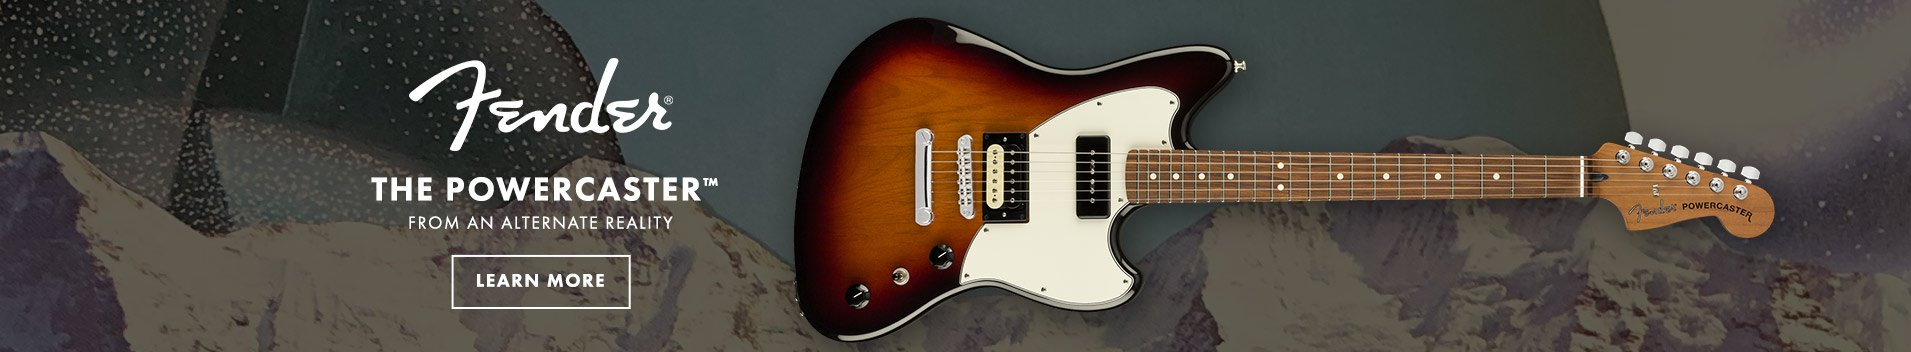 Replay Guitar Exchange Suhr Guitars - Shop Now